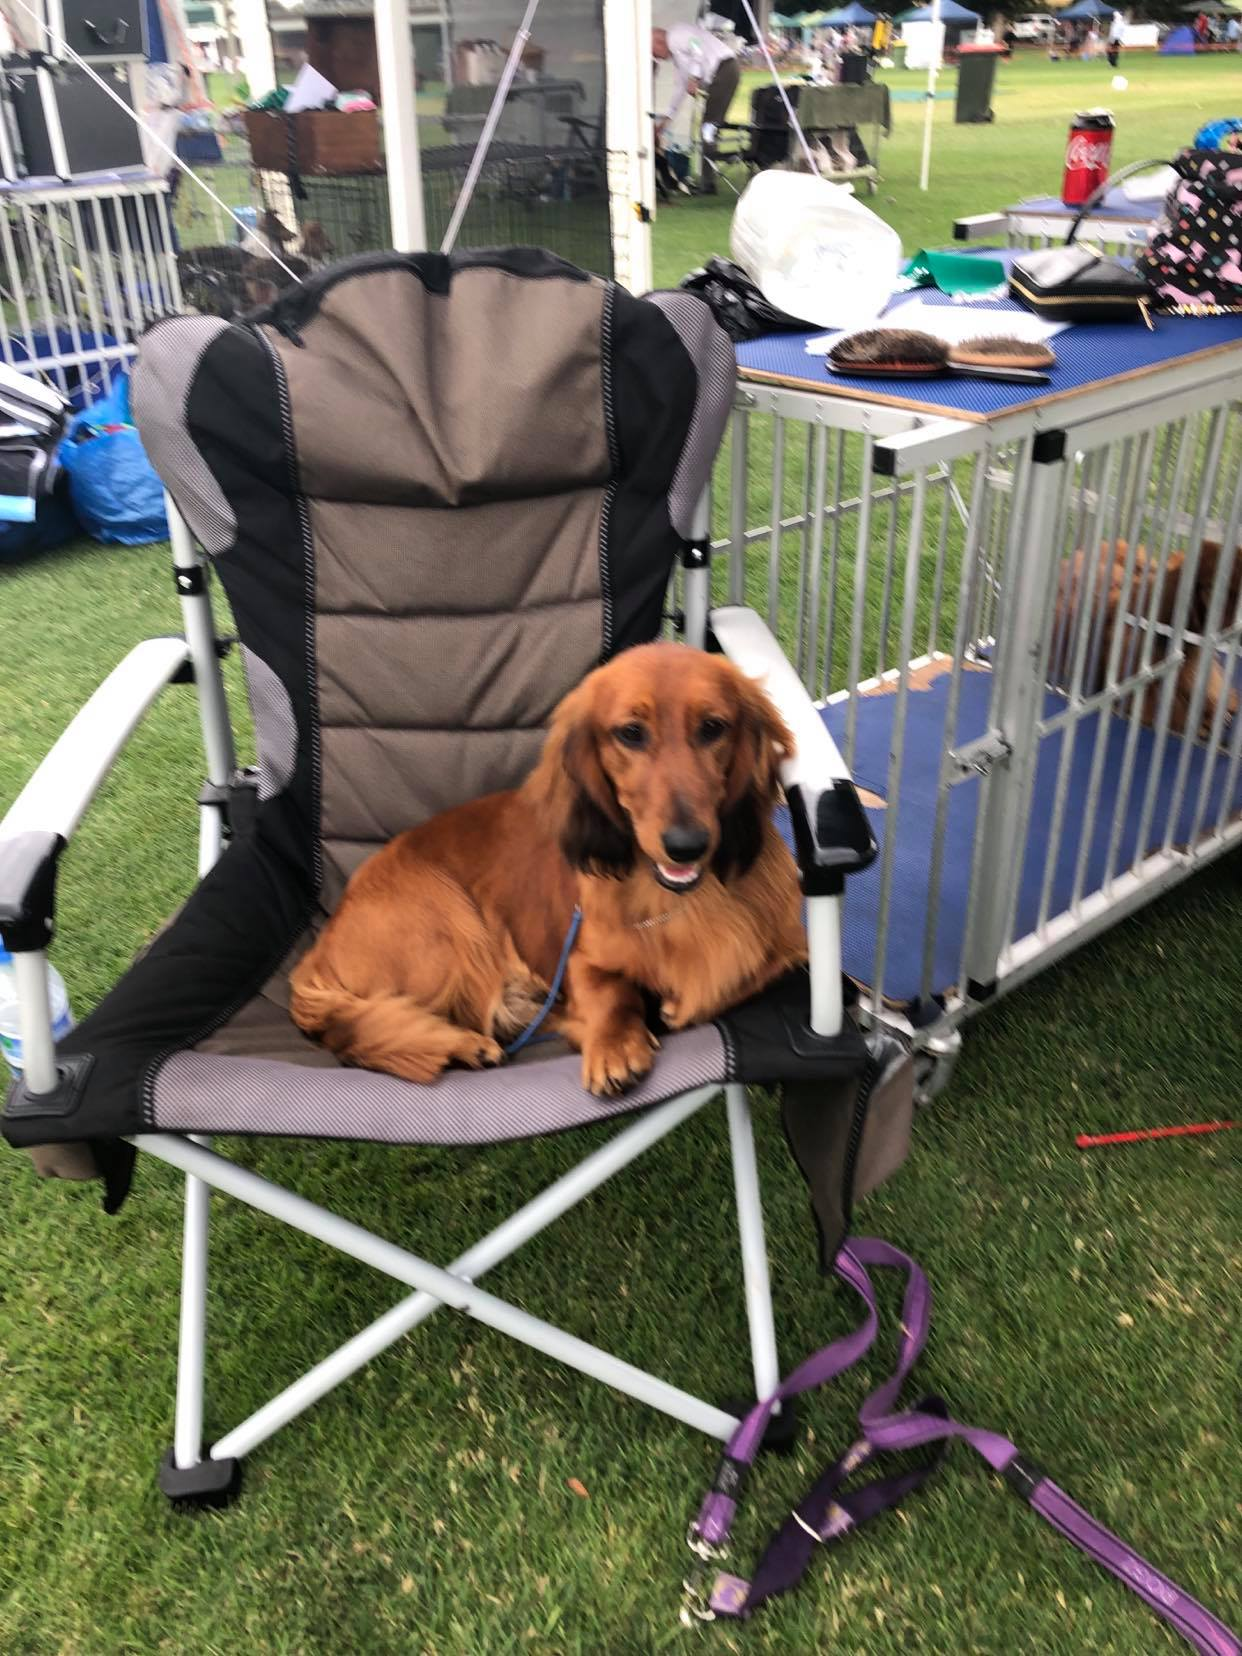 Aust. Ch. Belcara Dare Devil – 'Devil' – Just Chilling at a Dog Show